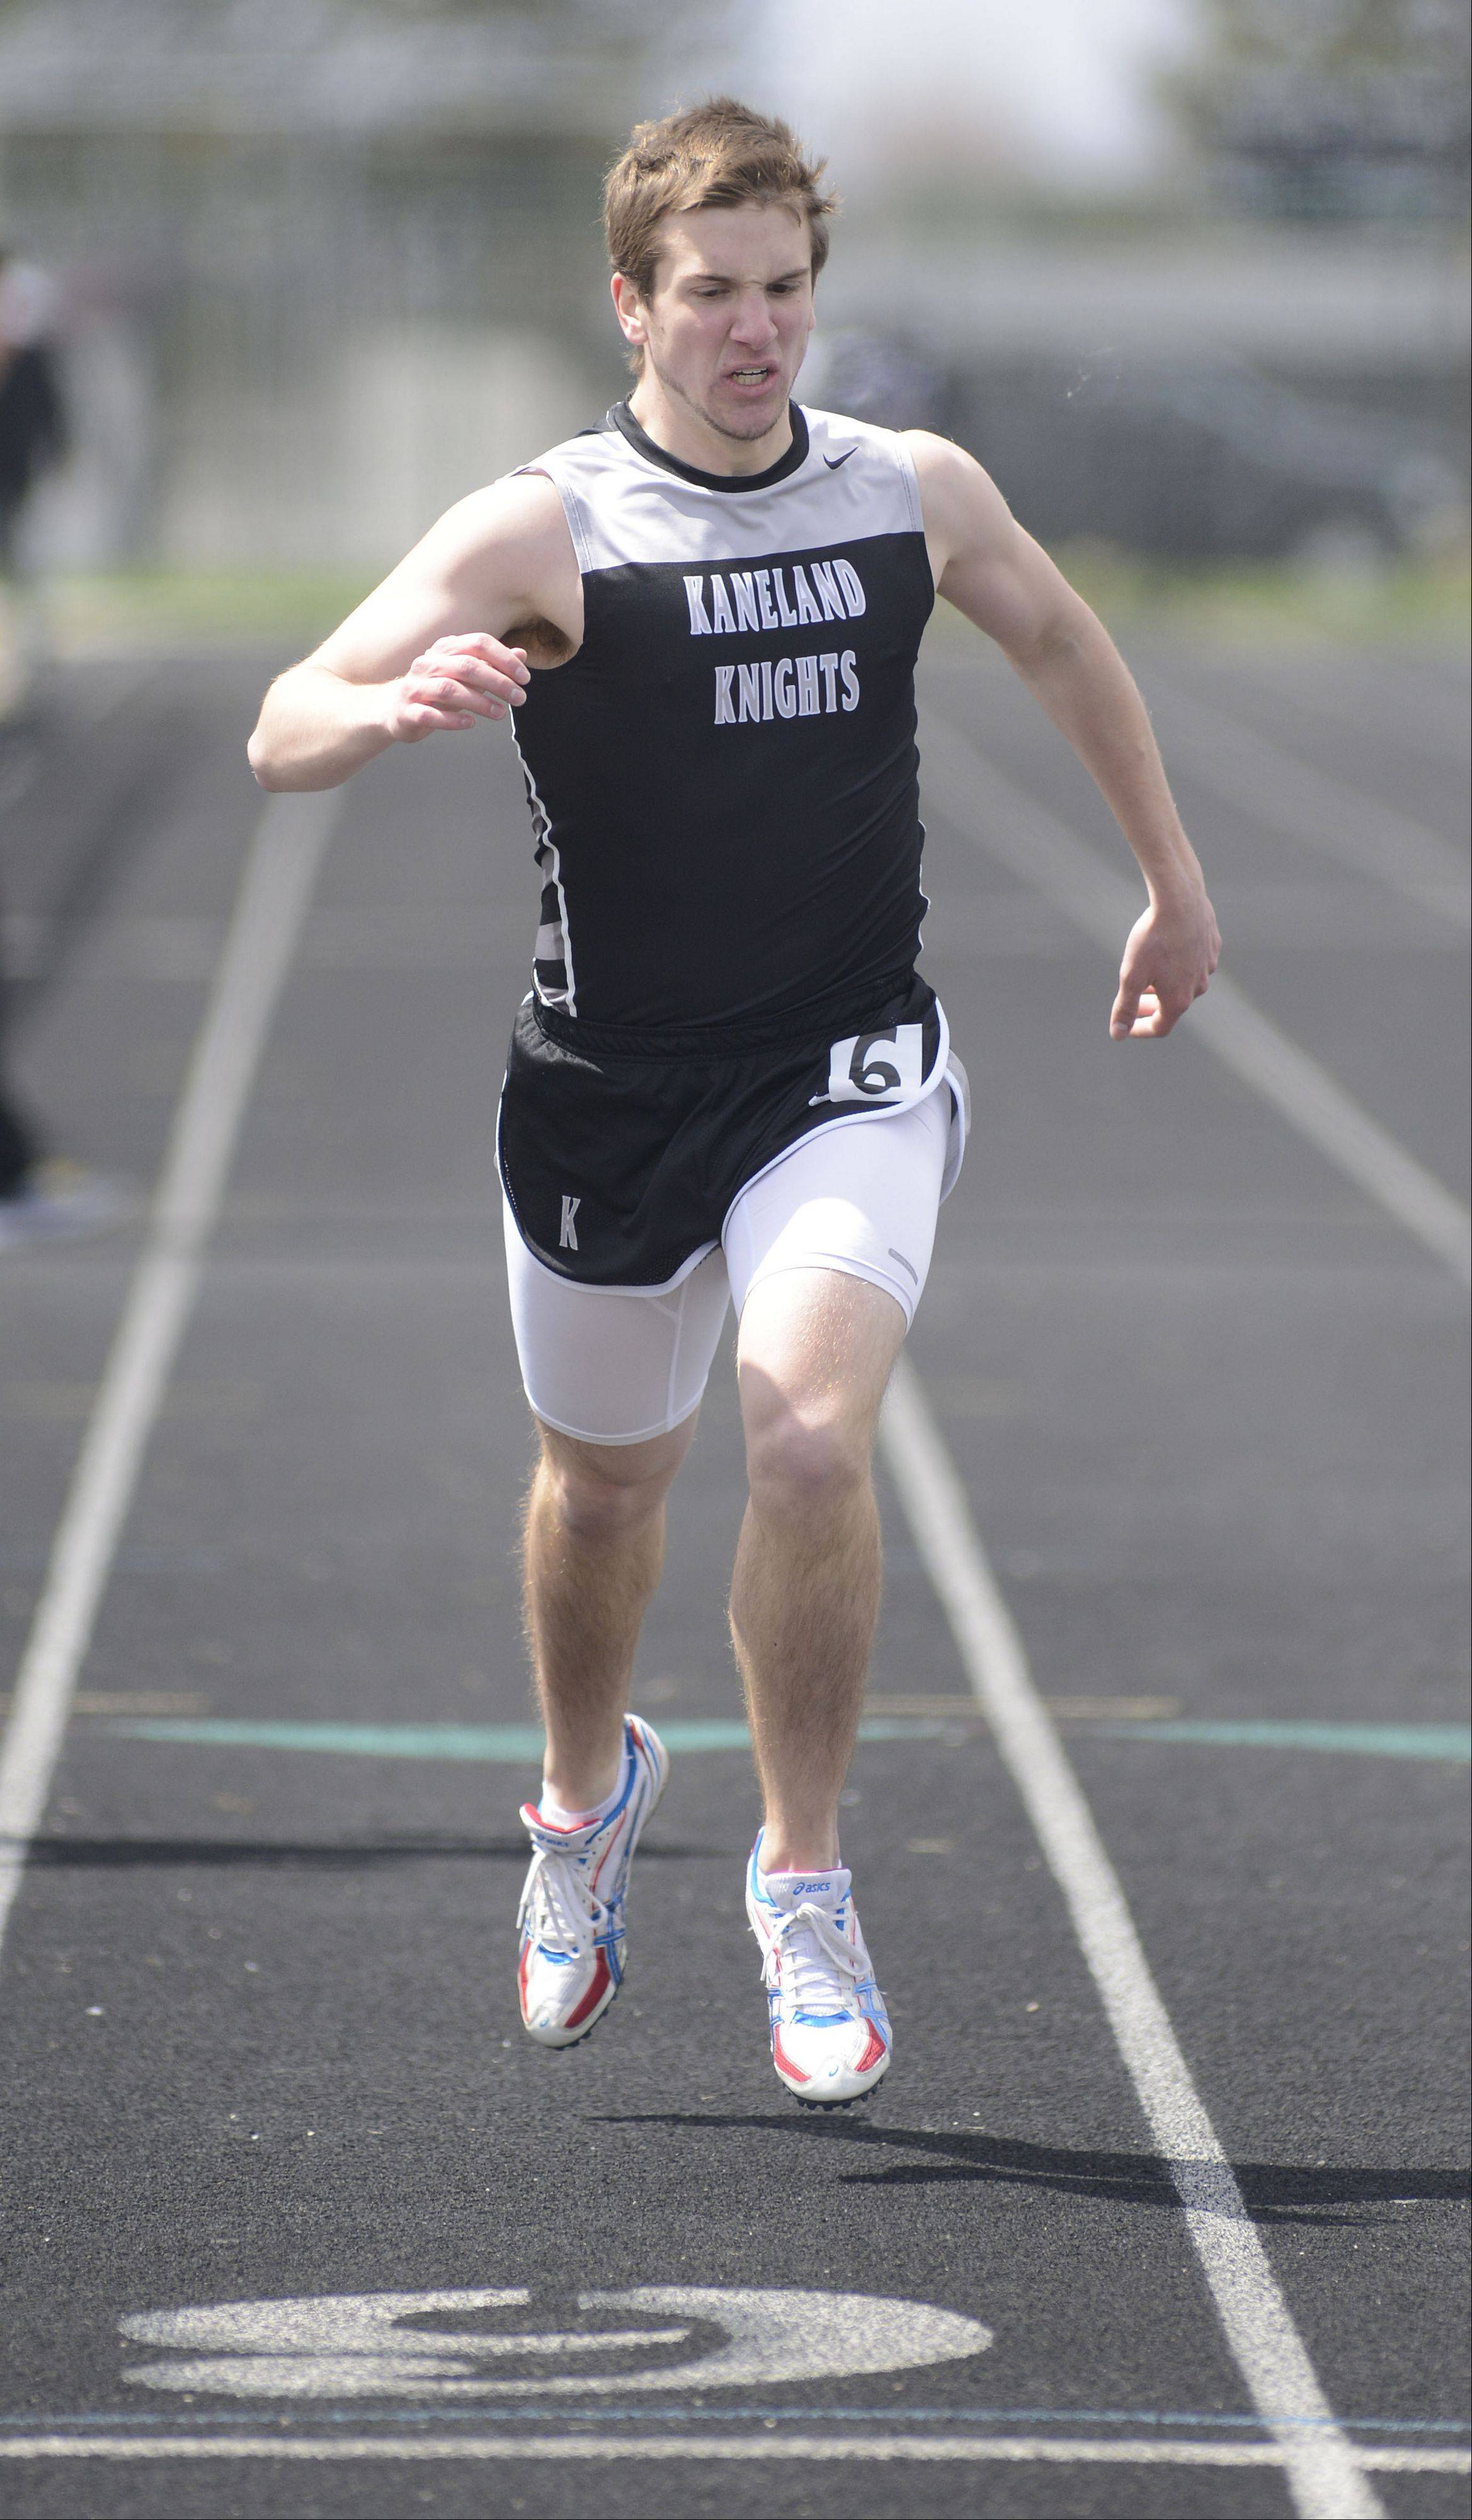 Kaneland's Brad Kigyos in the third heat of the 400 meter dash at Kaneland meet on Saturday, April 20.